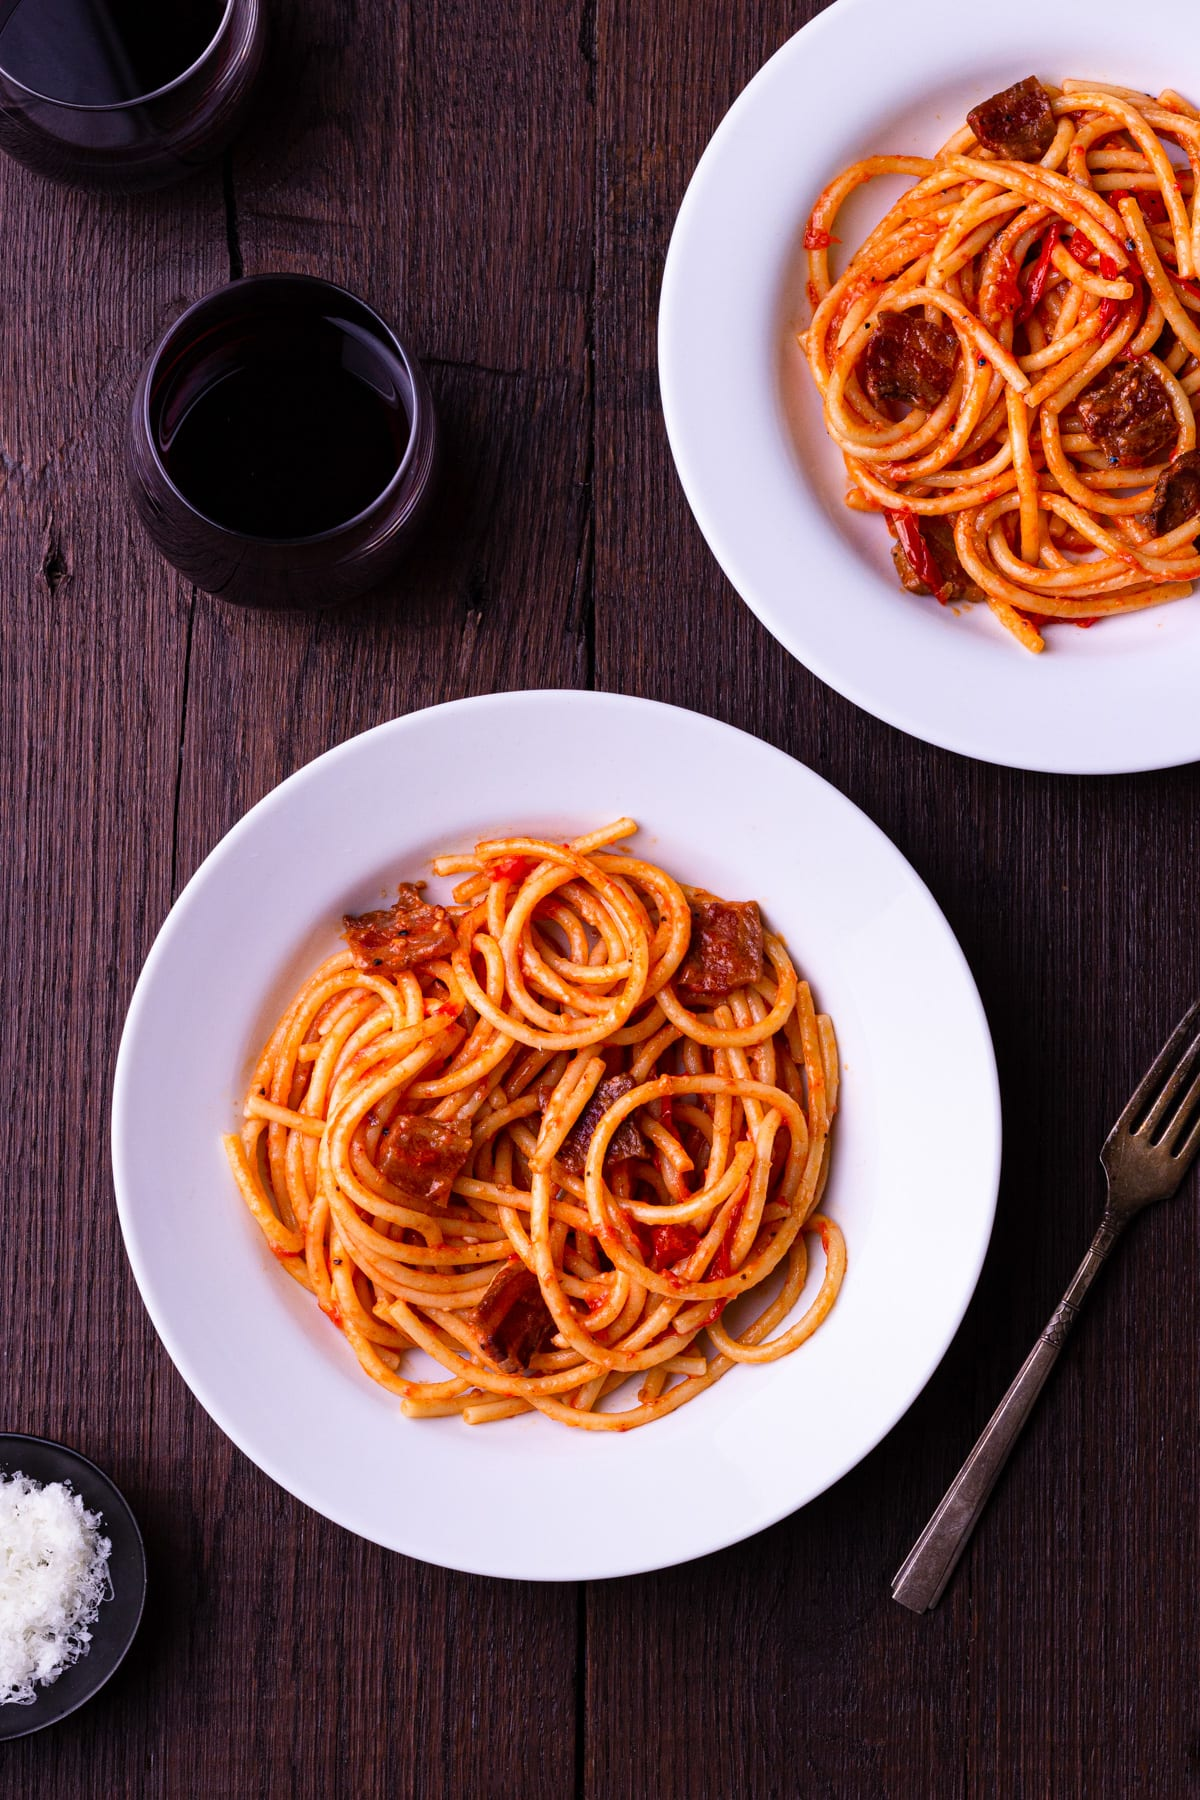 Overhead view of two bowls of Bucatini All'Amatriciana on a dark wood surface surrounded by glasses of red wine a fork.